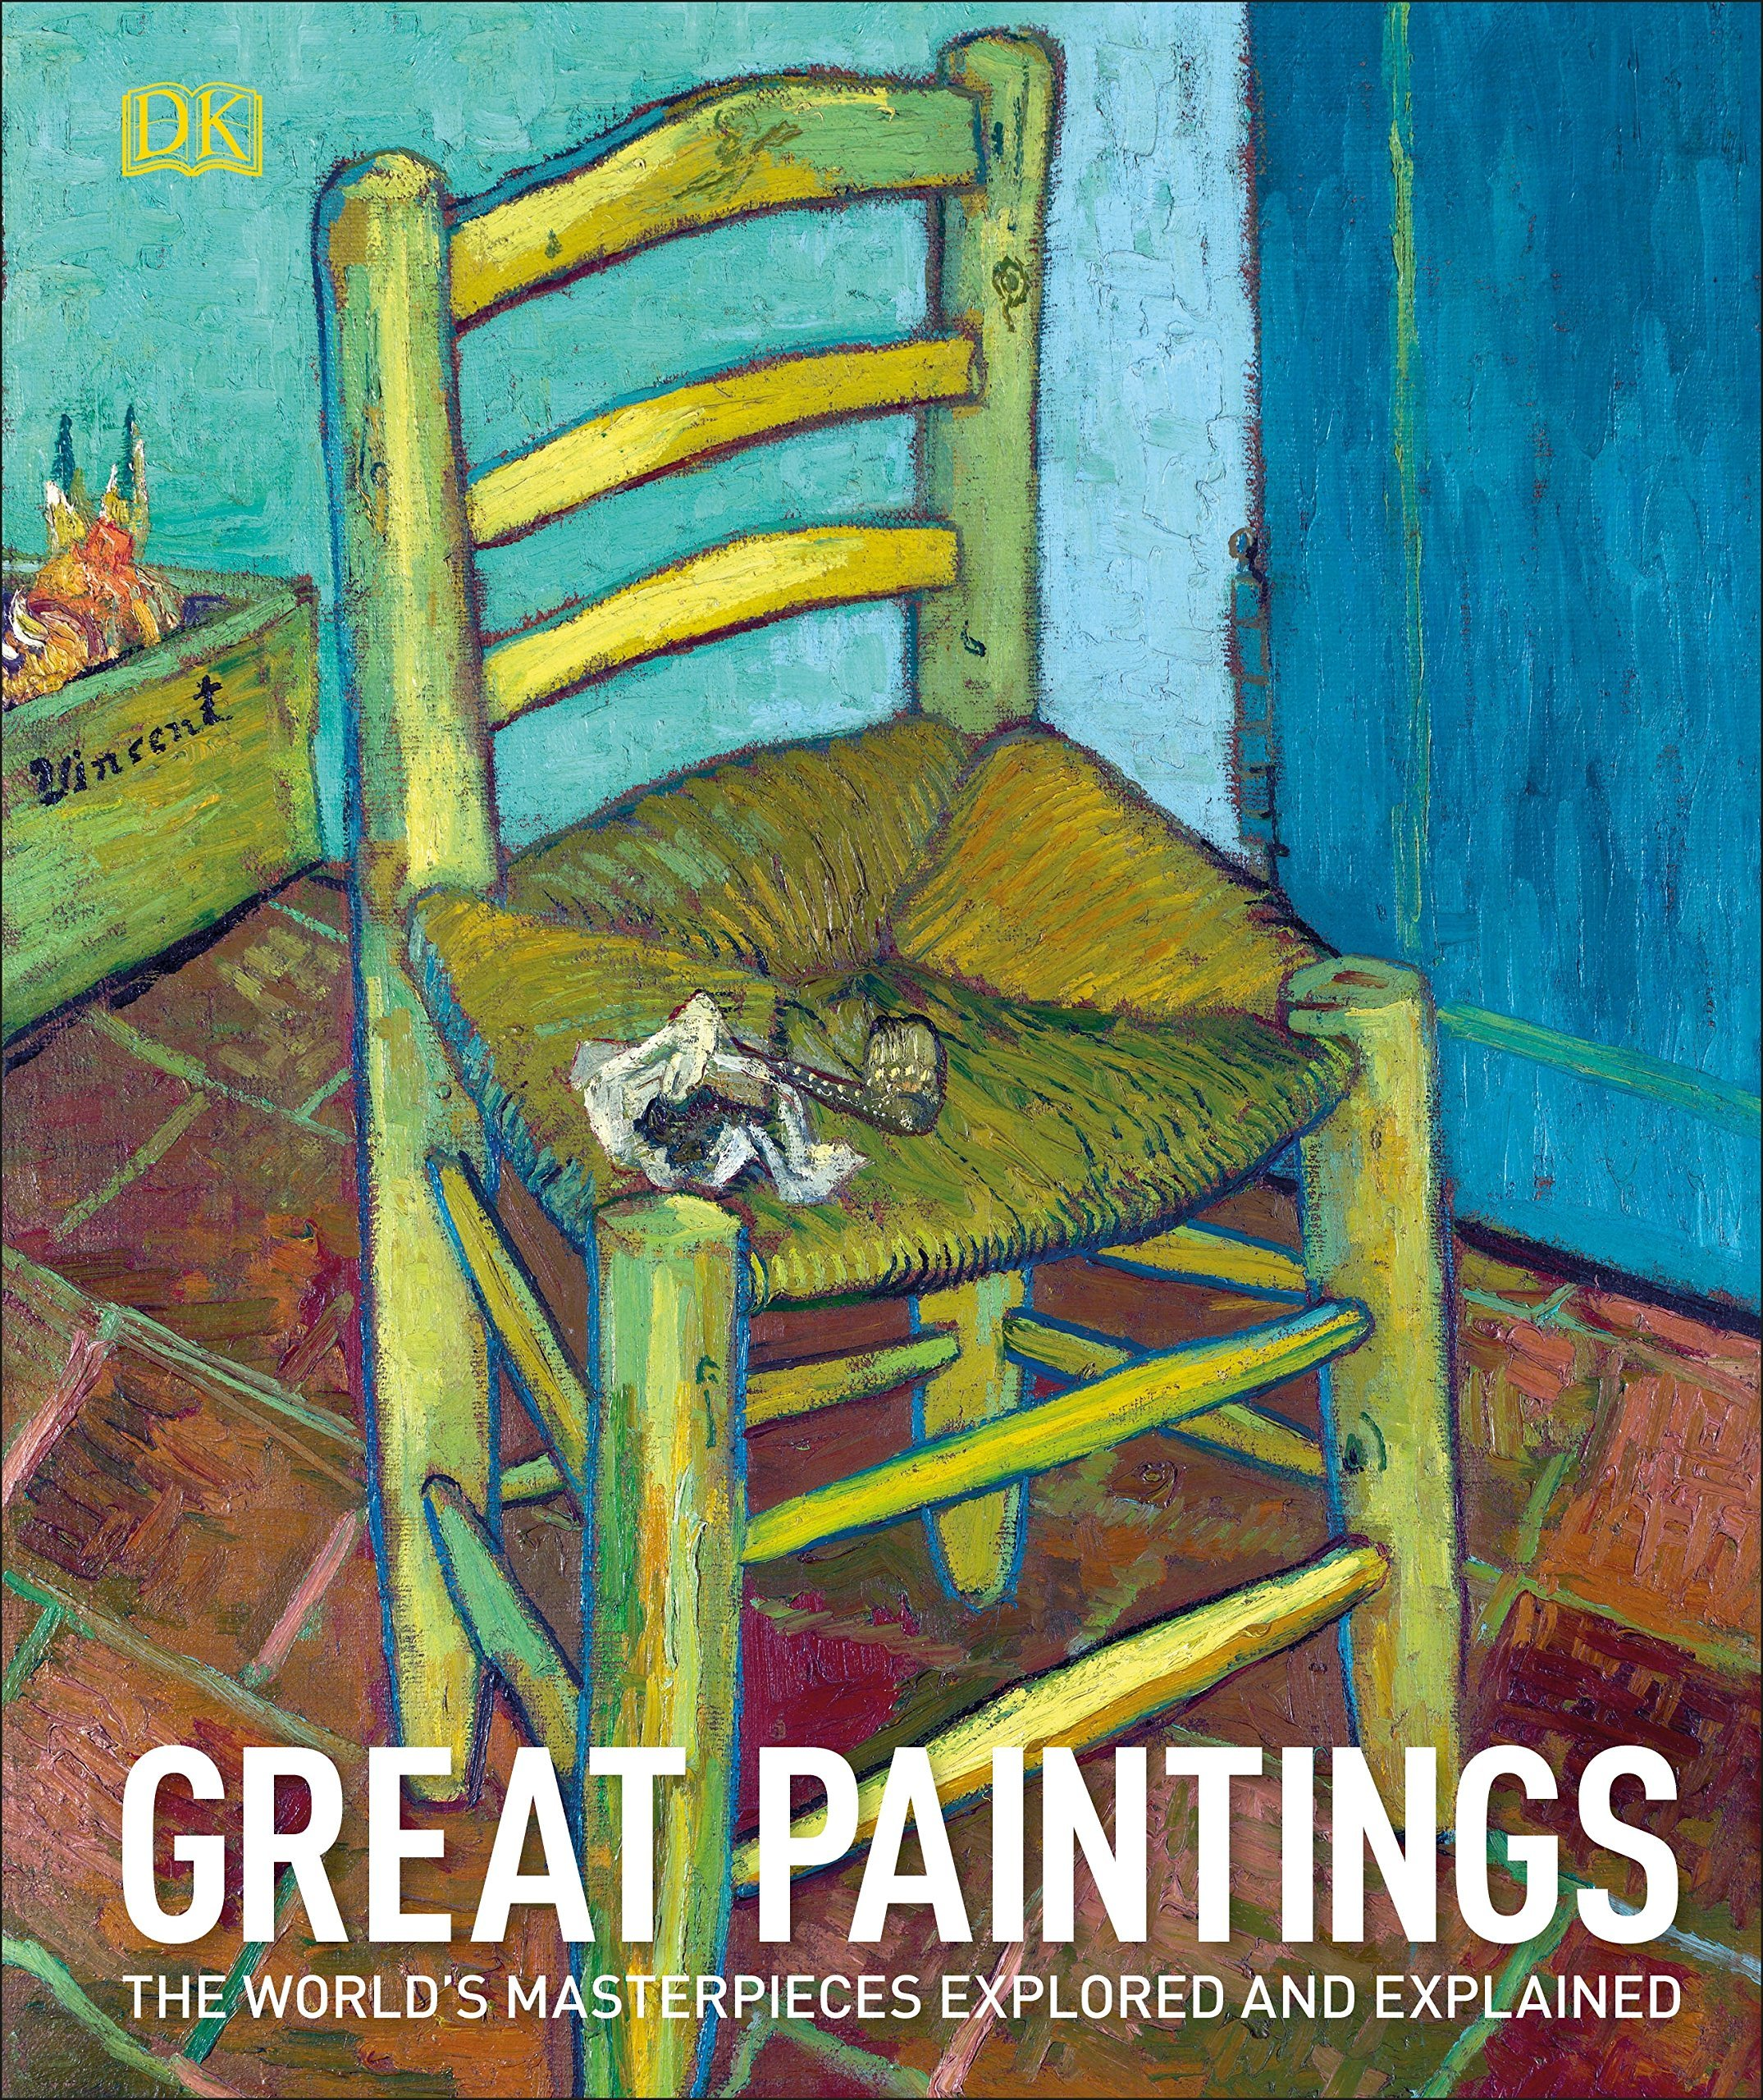 Great-Paintings-The-World-s-Masterpieces-Explored-and-Explained